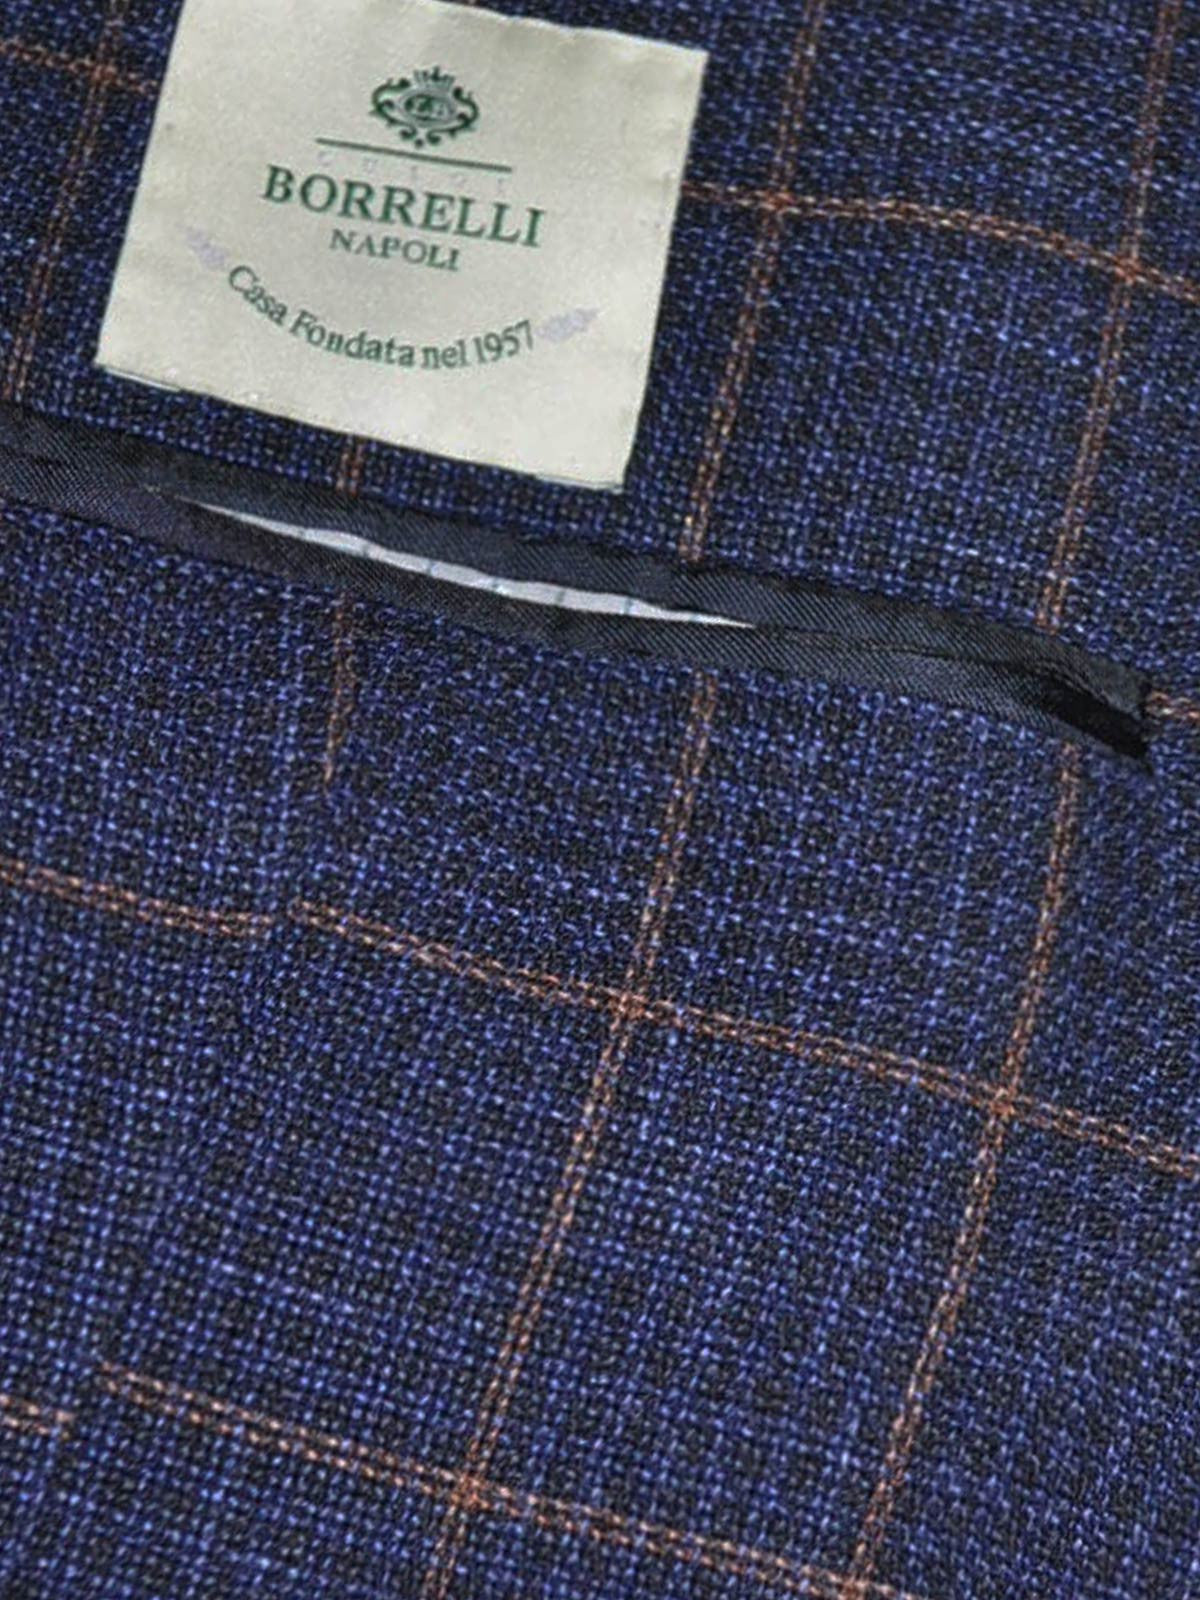 New Luigi Borrelli Sport Coat